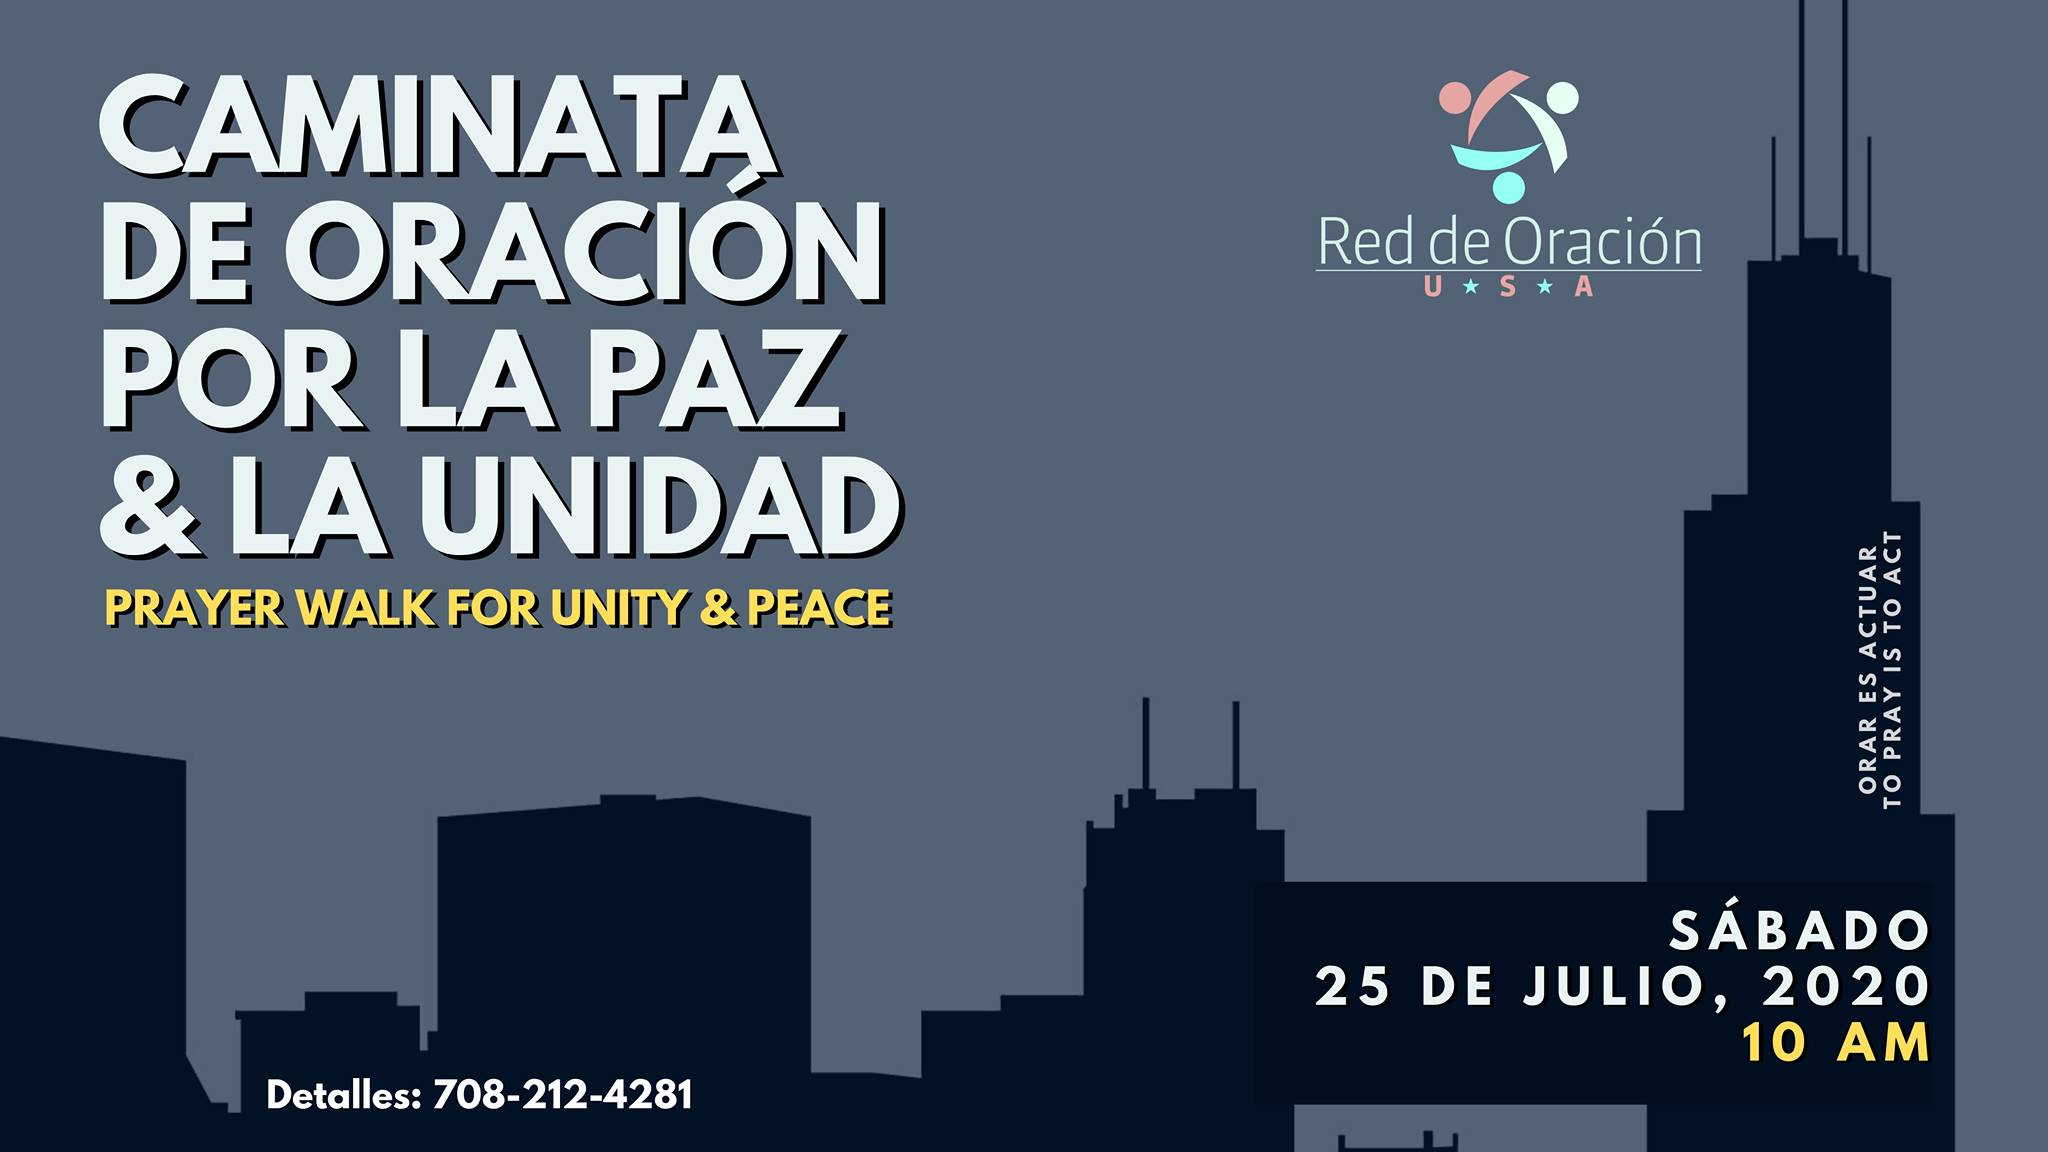 Caminata de Oracion / Prayer walk for peace & unity